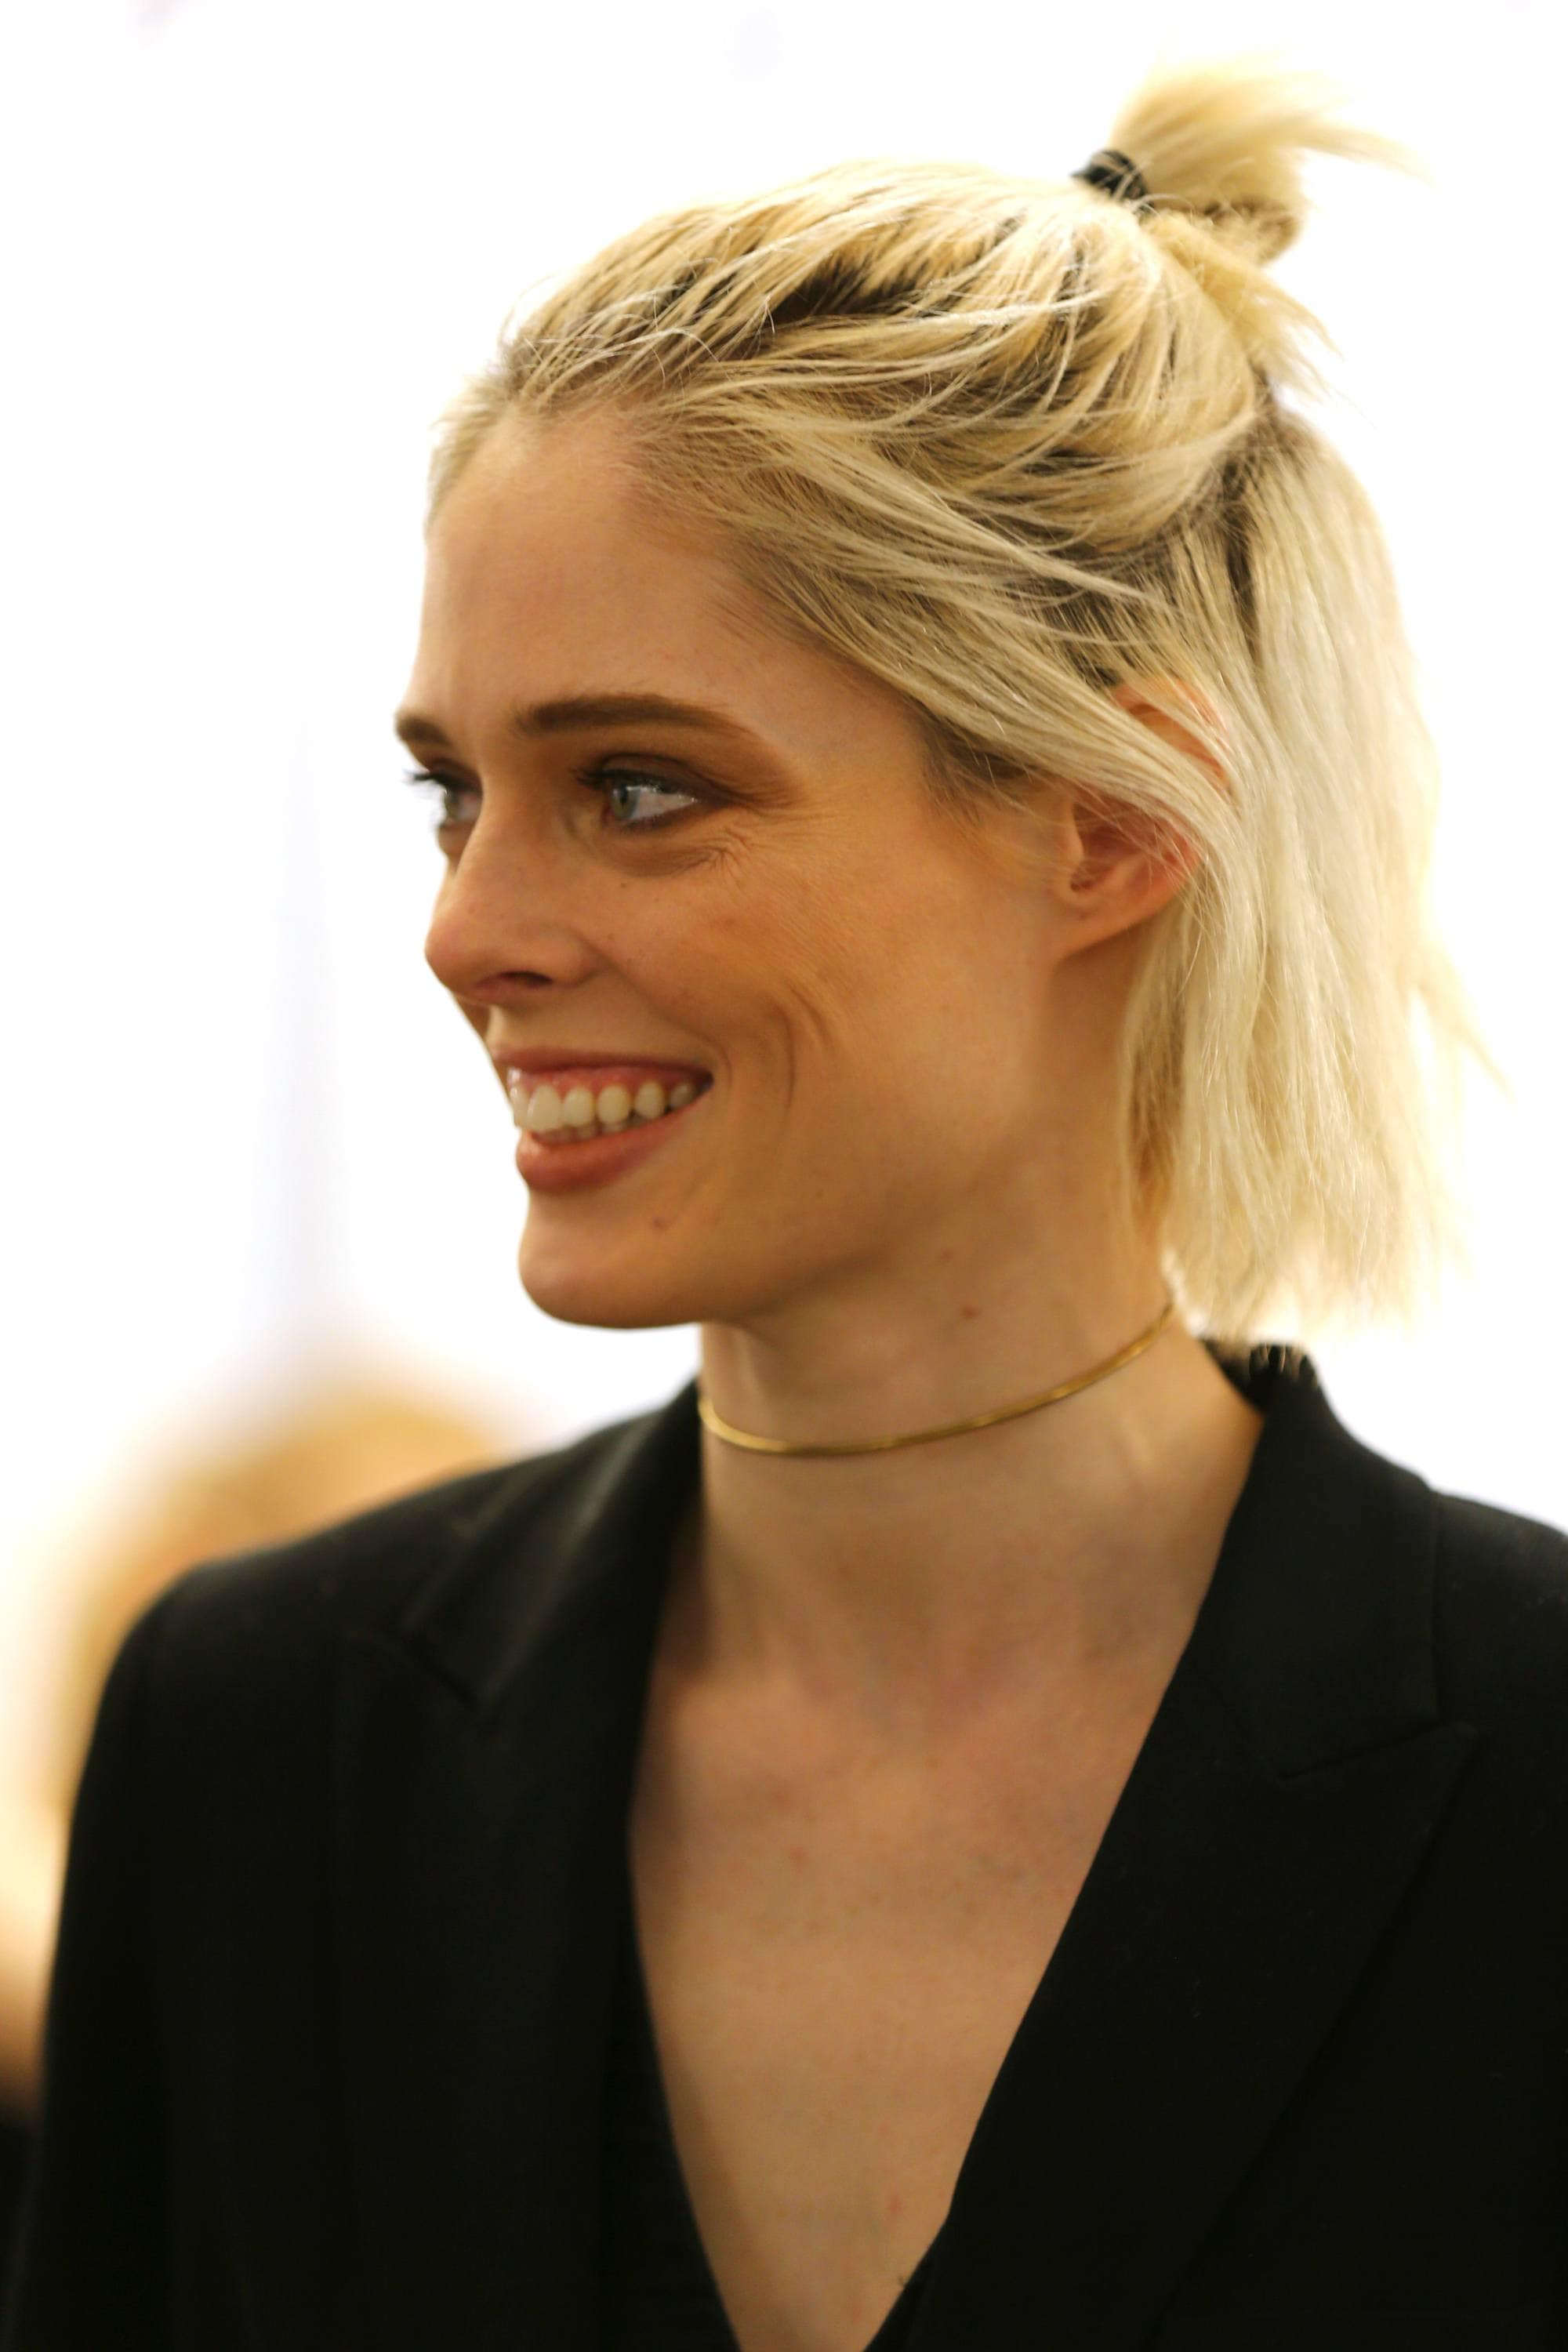 coco rocha with half up ponytail hairstyle backstage